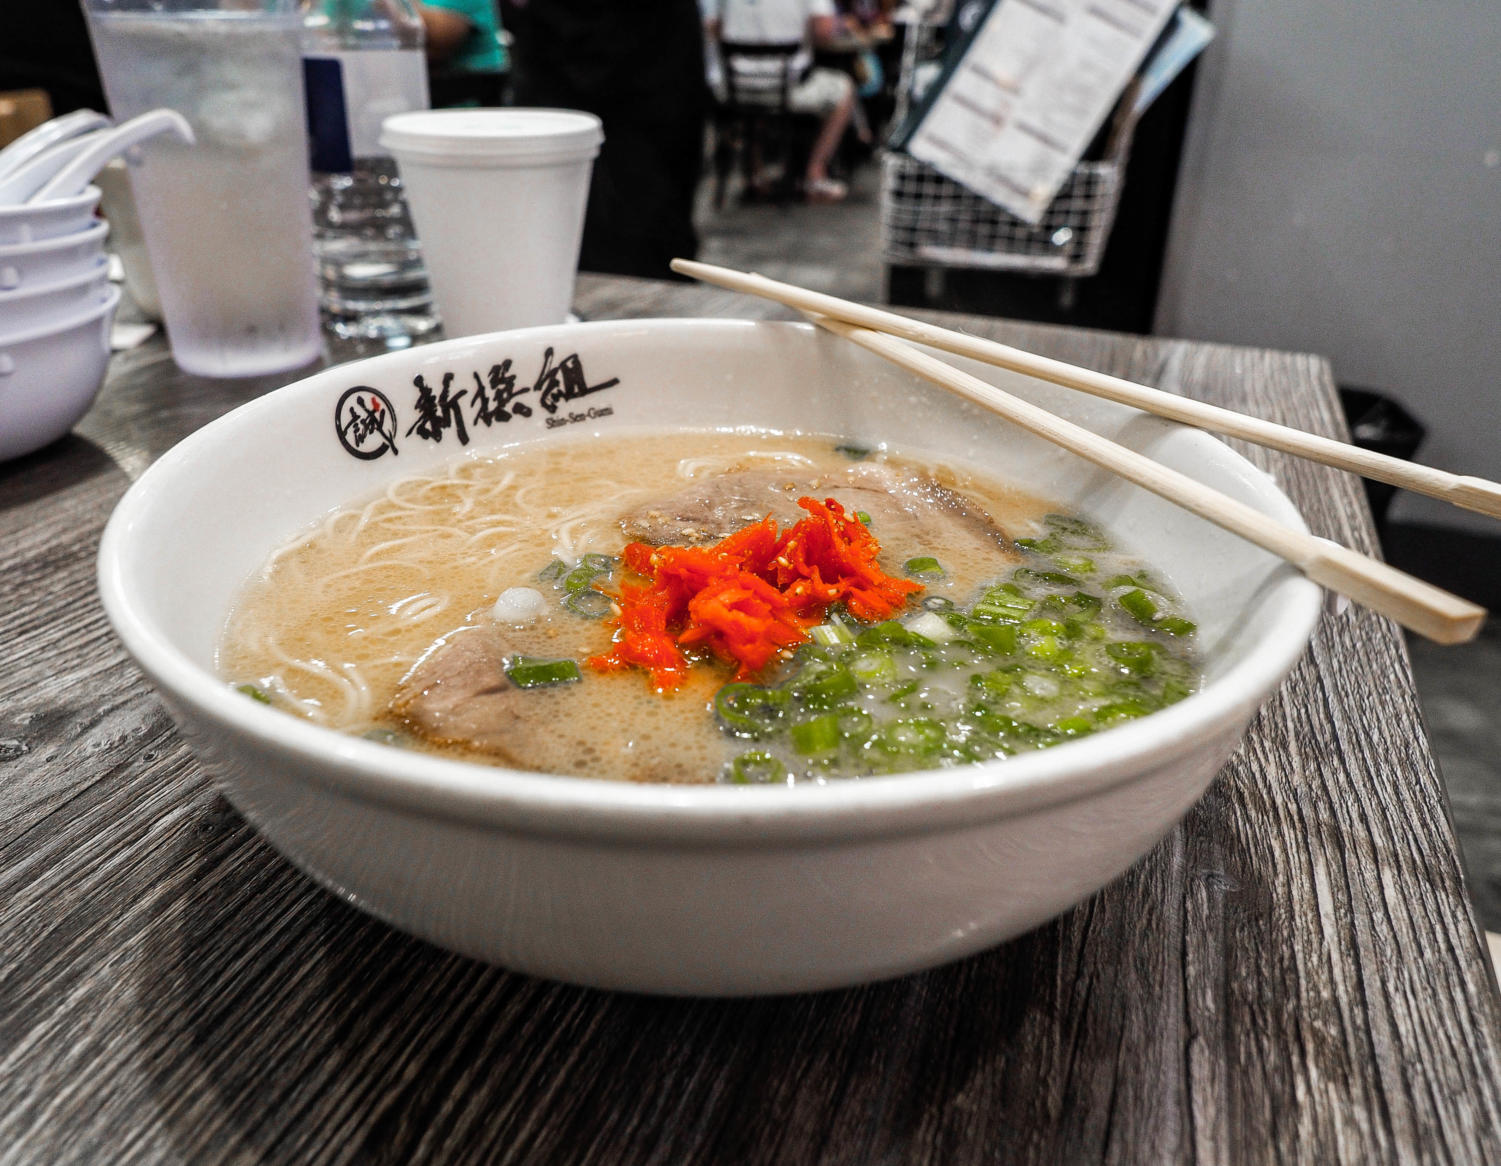 One of Shin-Sen-Gumi's popular dishes, Hakata Ramen, featres a deep and flavorful soup base topped with noodles customized to cook the way you order it. The ramen also comes with pieces of pork belly, green onion and ginger.